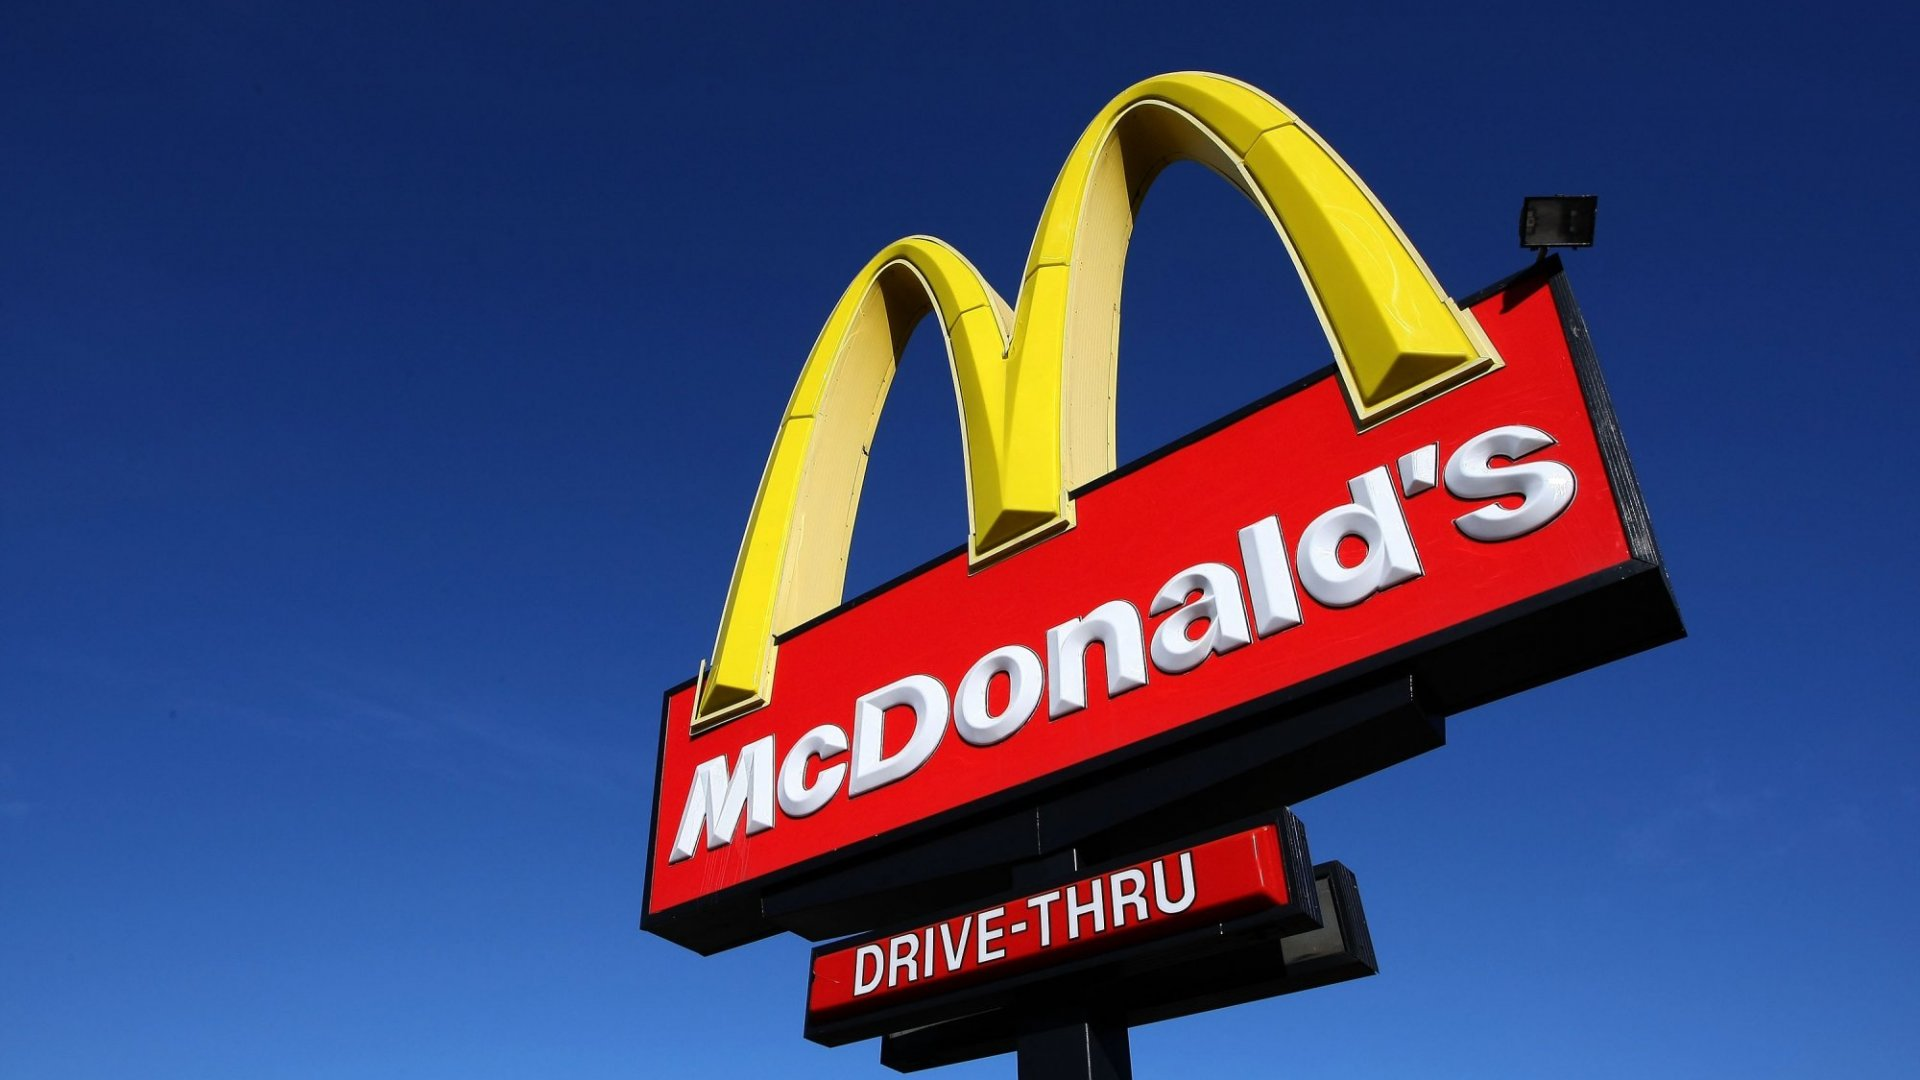 McDonald's Just Had the Single Worst Day in Its Company's History. Here's What Happened